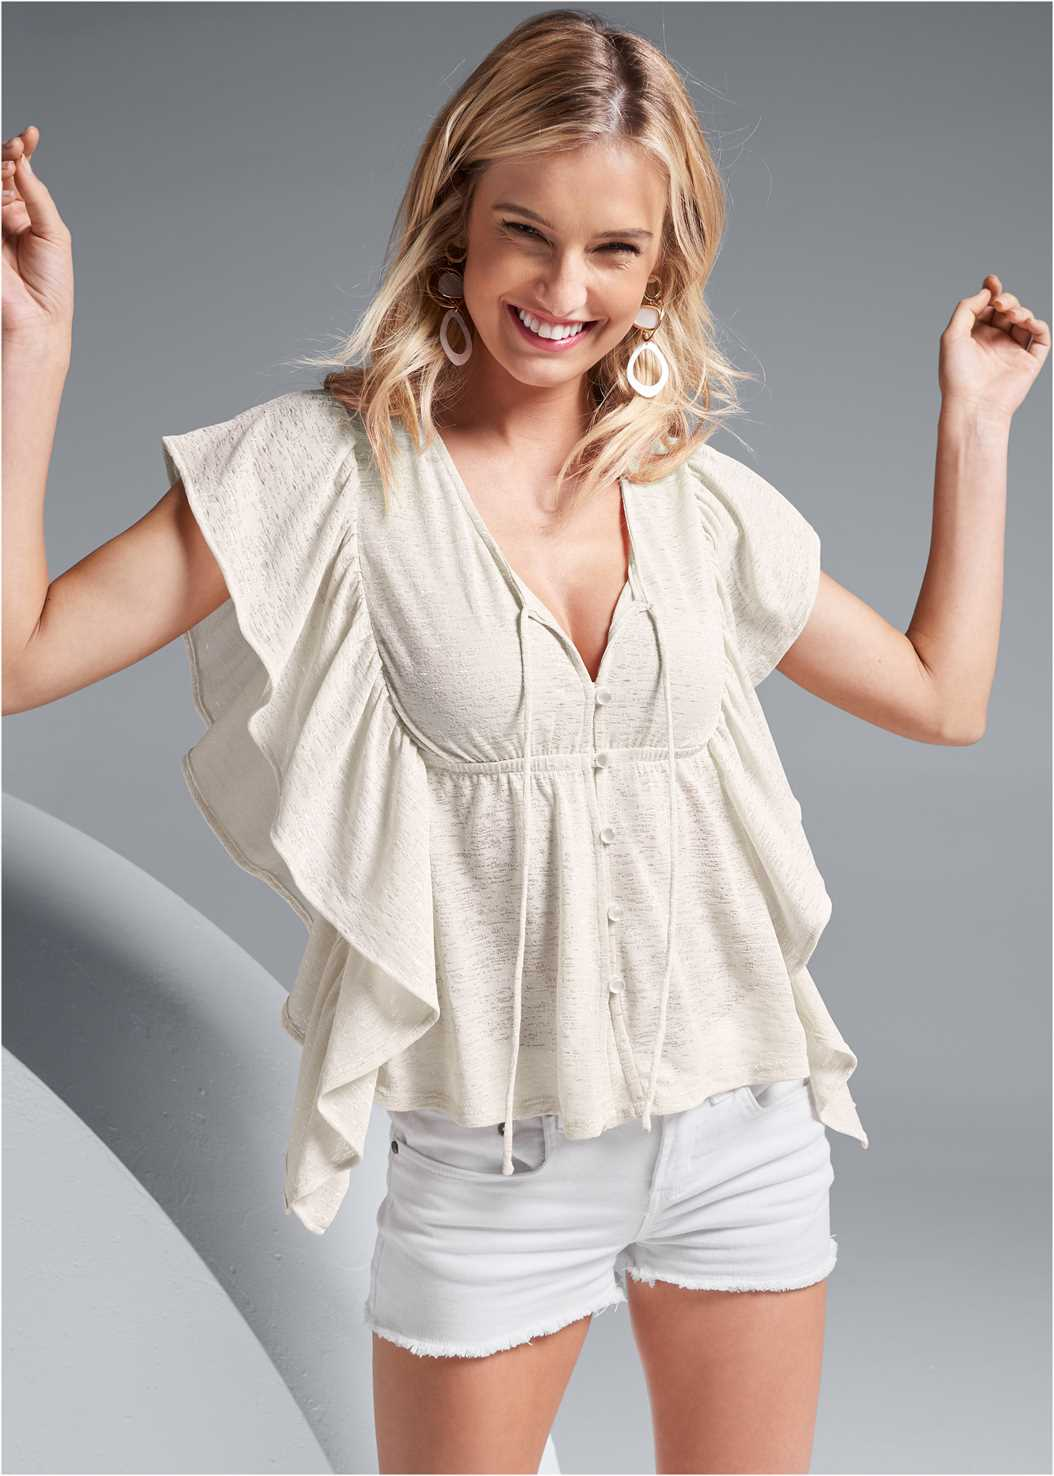 Ruffle Detail Button Up Top,Frayed Cut Off Jean Shorts,Embellished Wedges,Long Circle Earrings